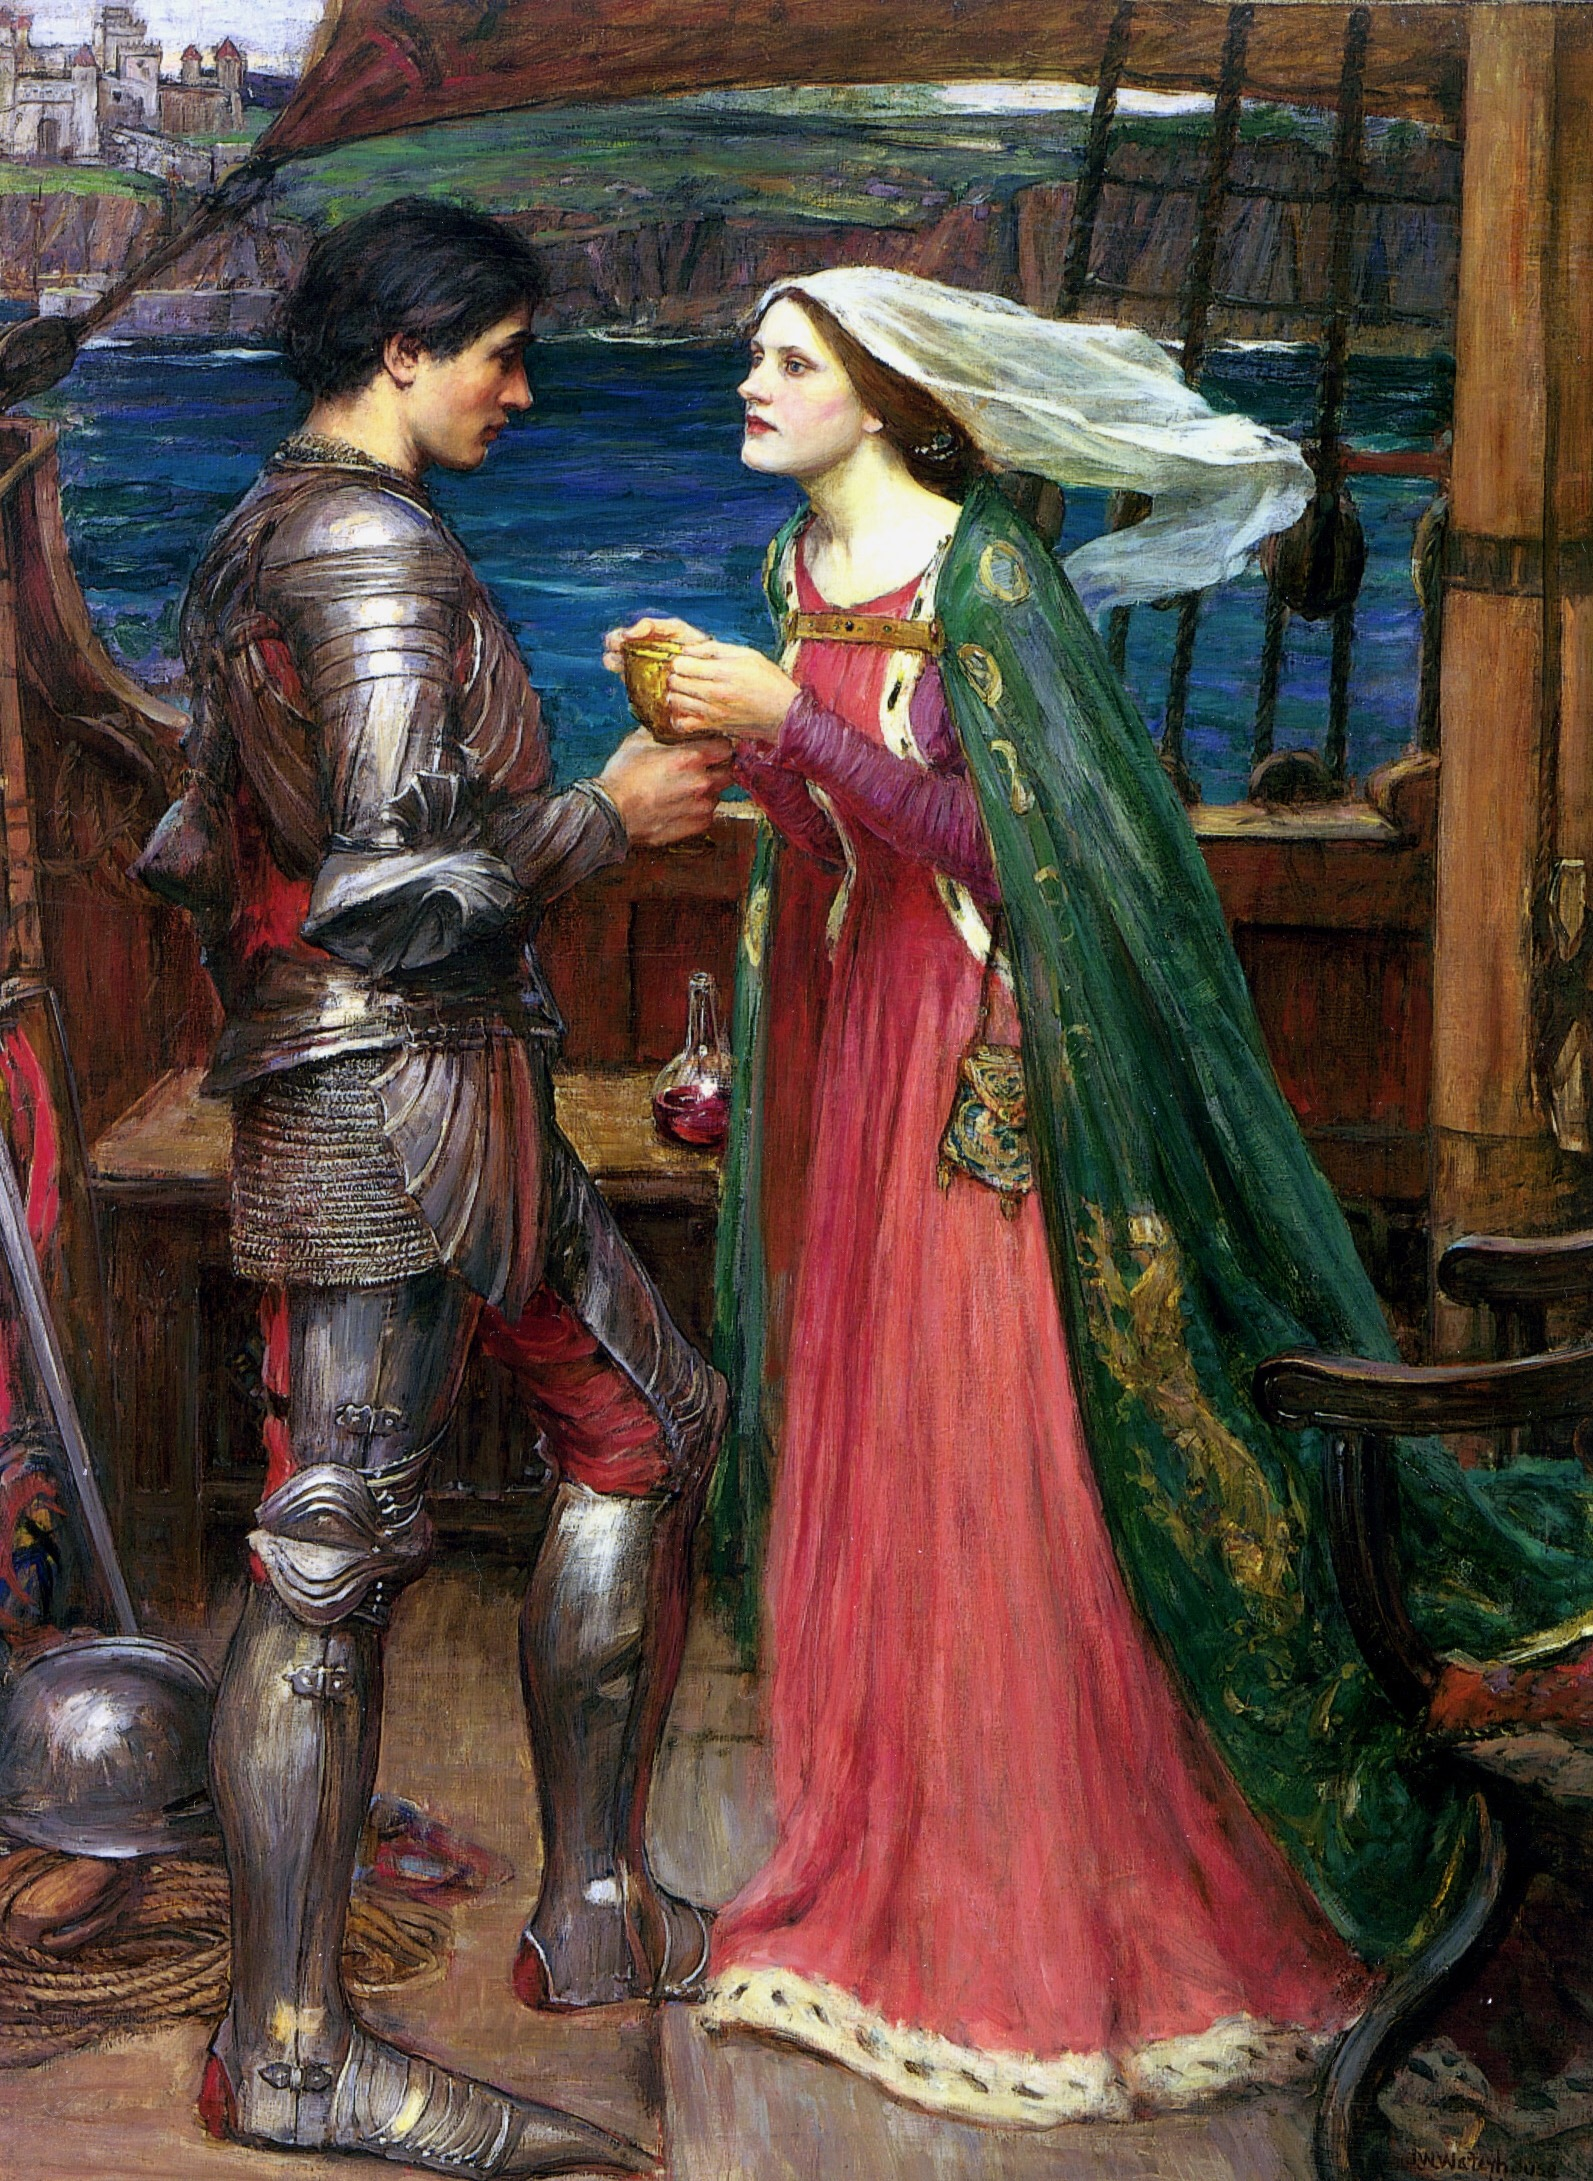 Tristran and Isolde, by John William Waterhouse, 1916, version 2